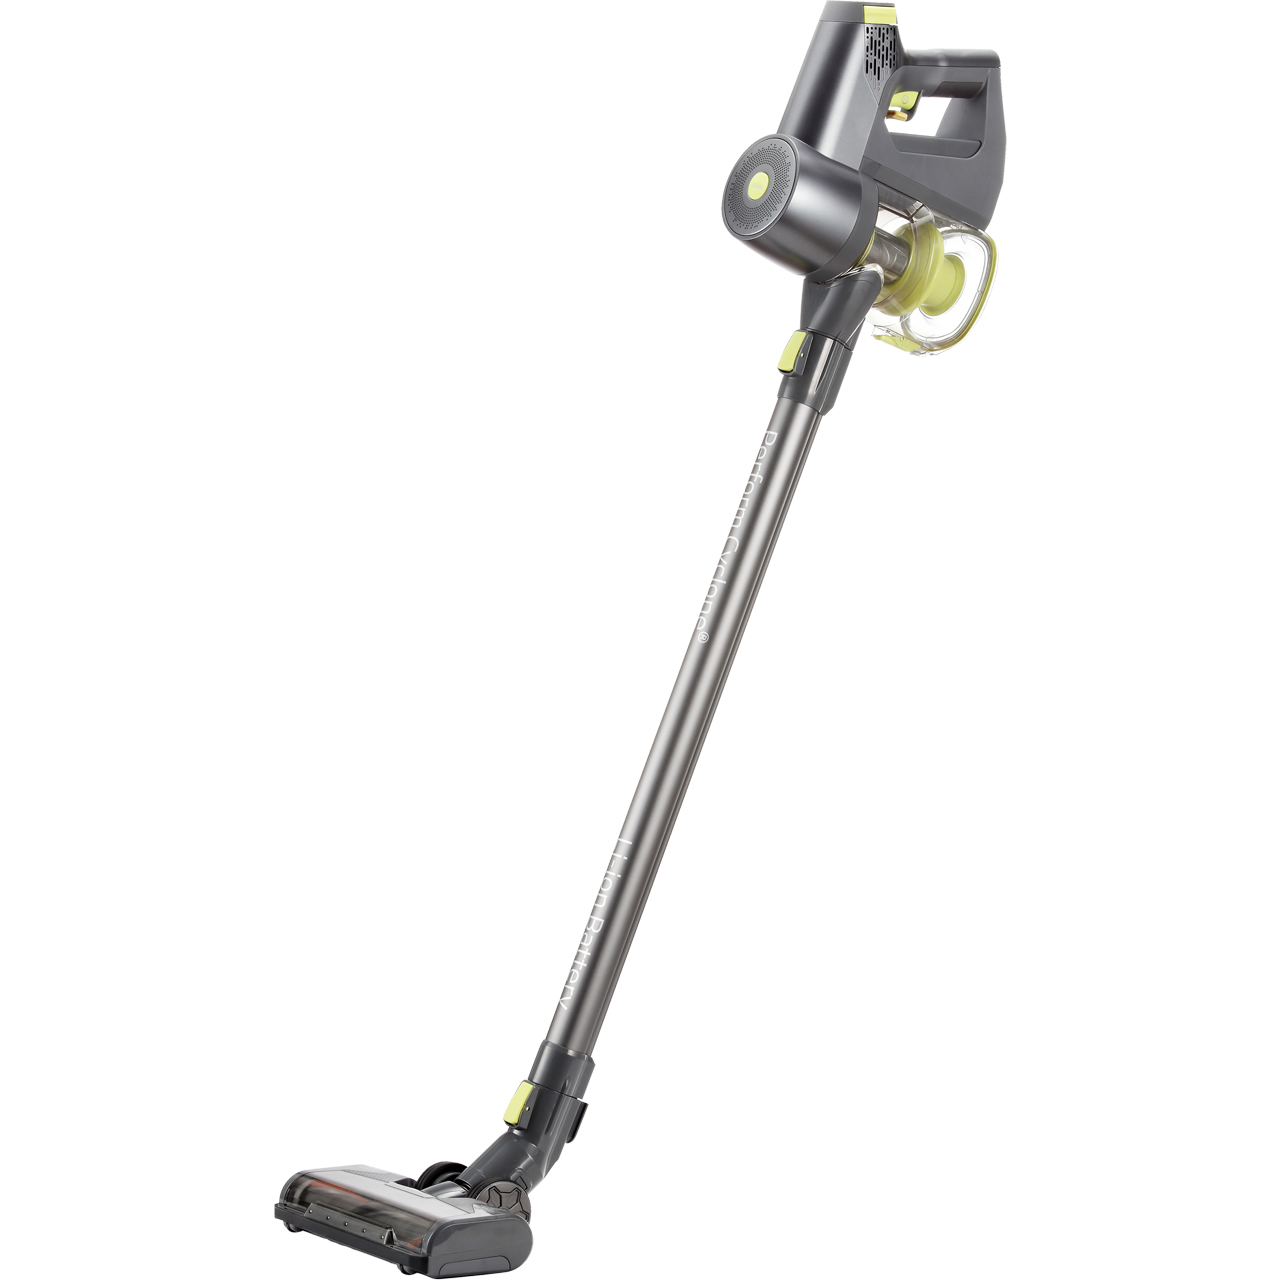 Beko VRT82821BV Cordless Vacuum Cleaner with up to 40 Minutes Run Time